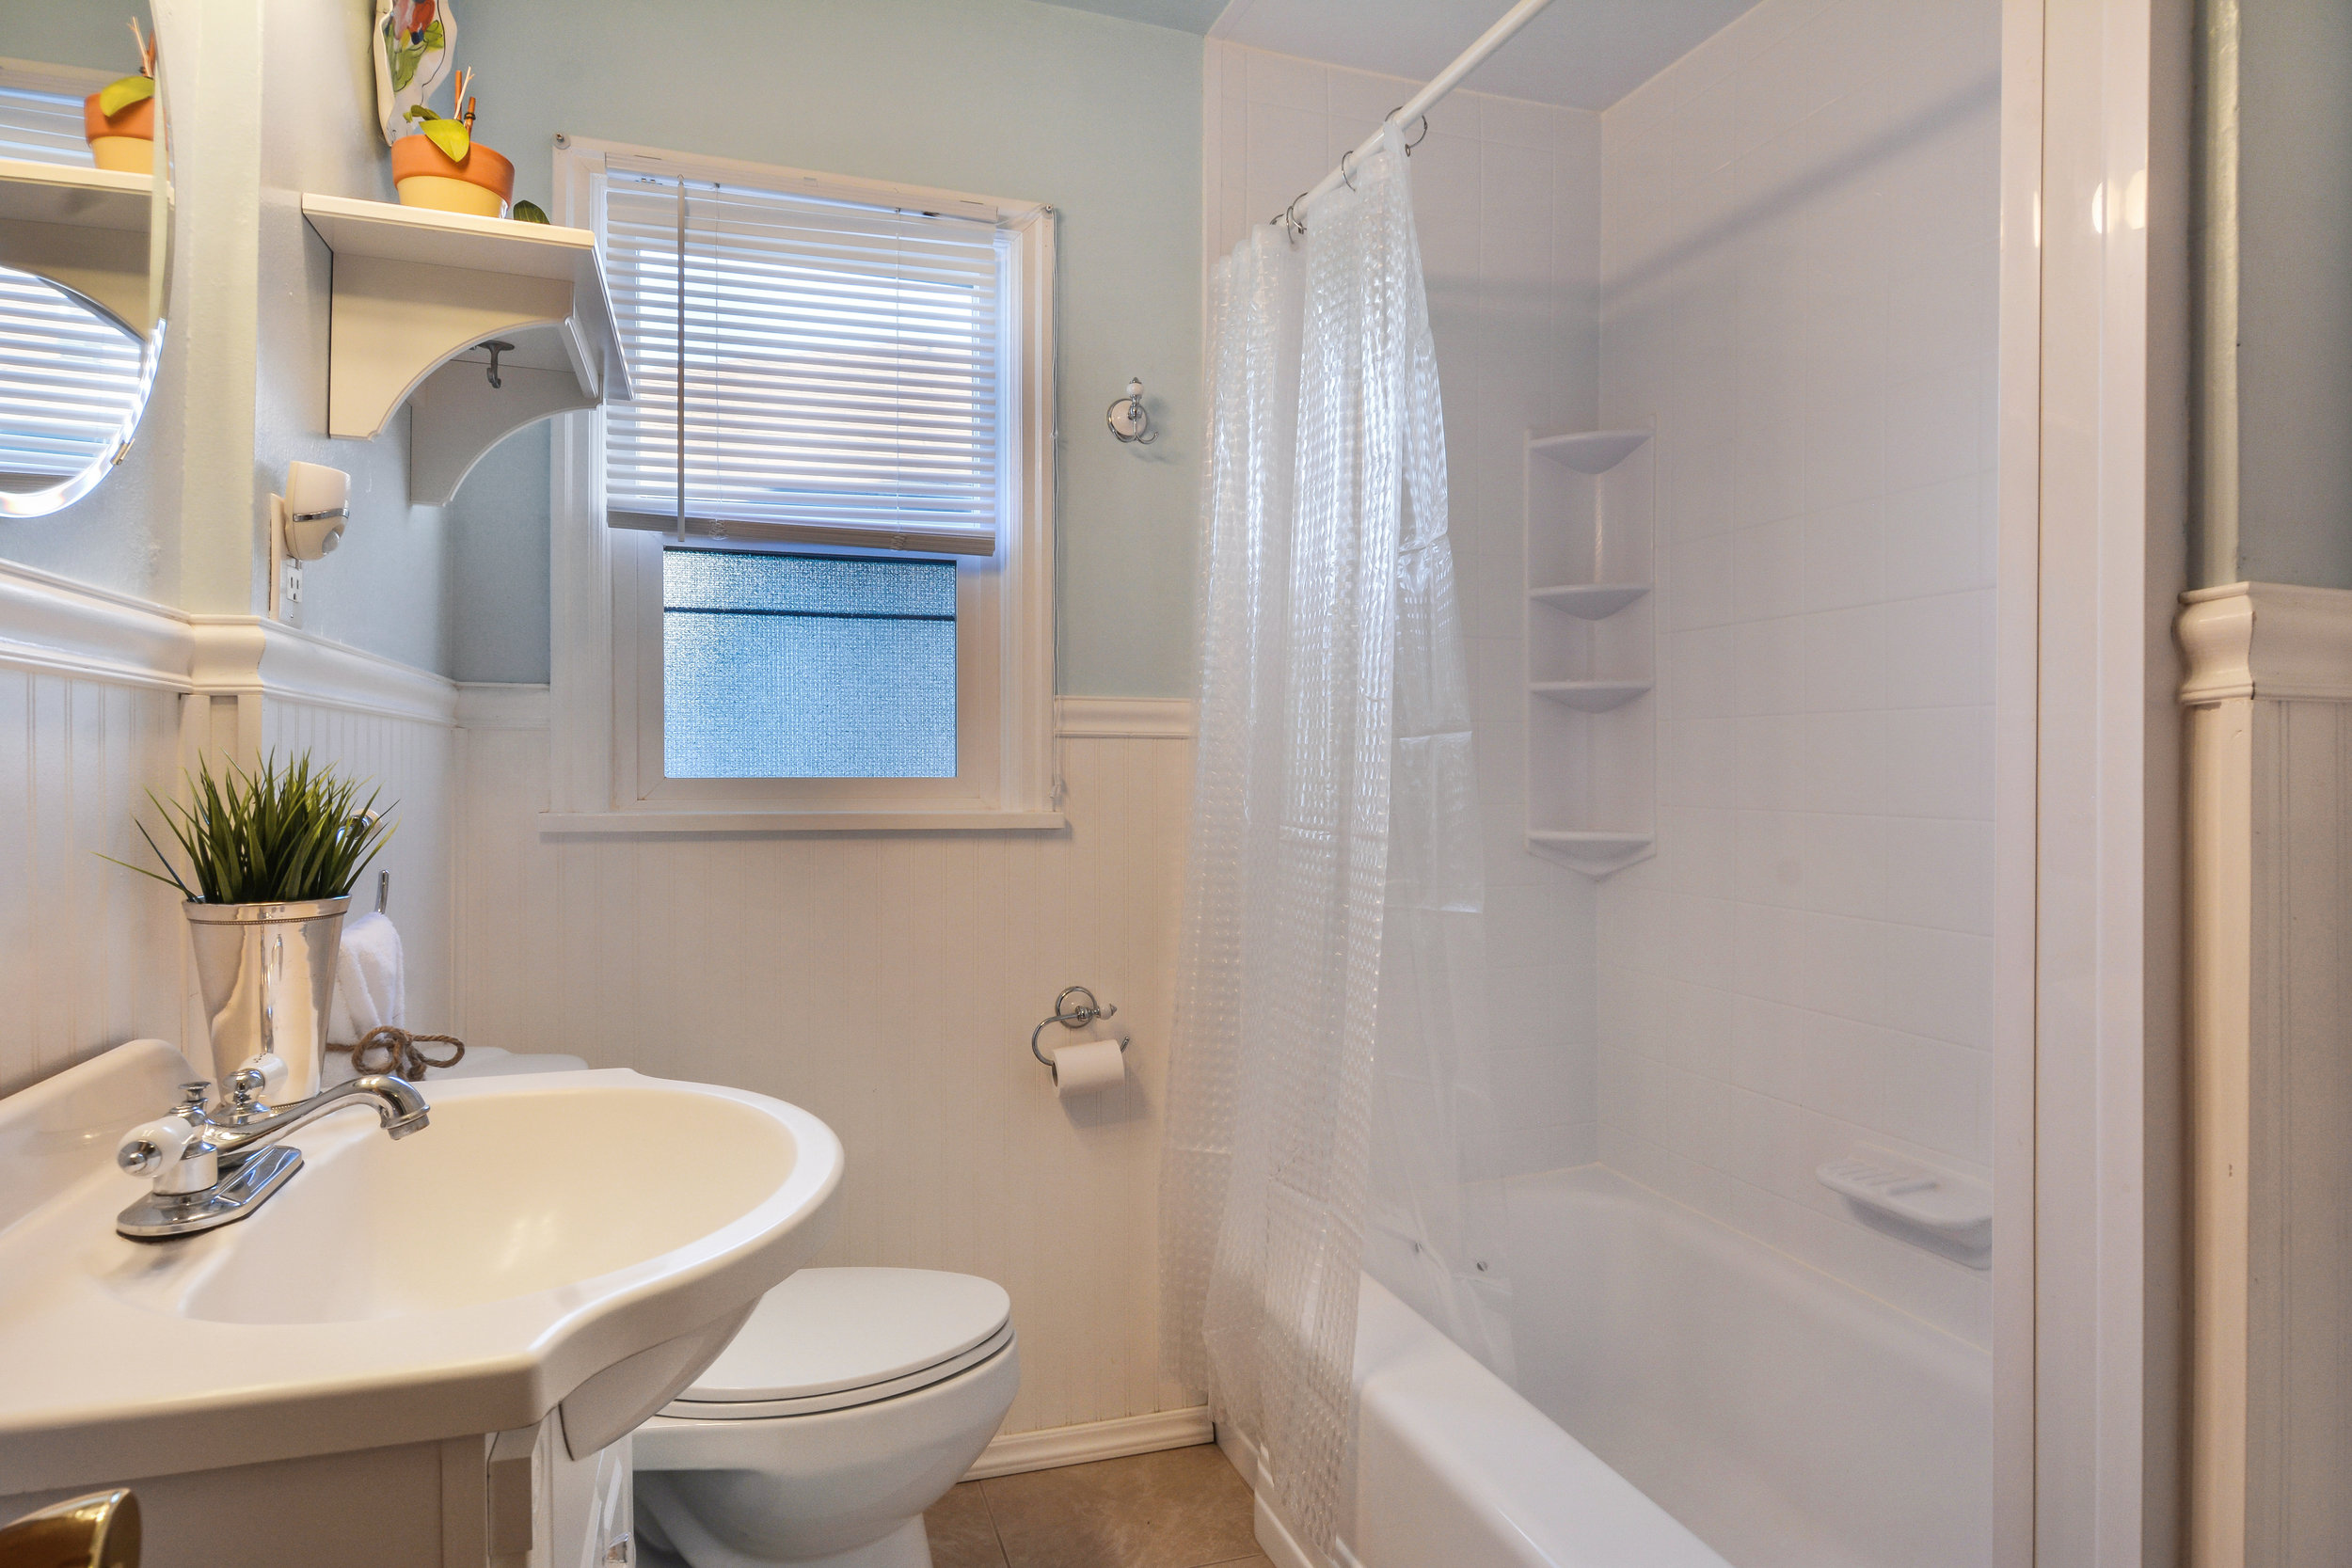 The full bathroom is located between the two bedrooms in a spacious hall. Tile floor, easy to clean tub surround, white wainscot, and cool color scheme.